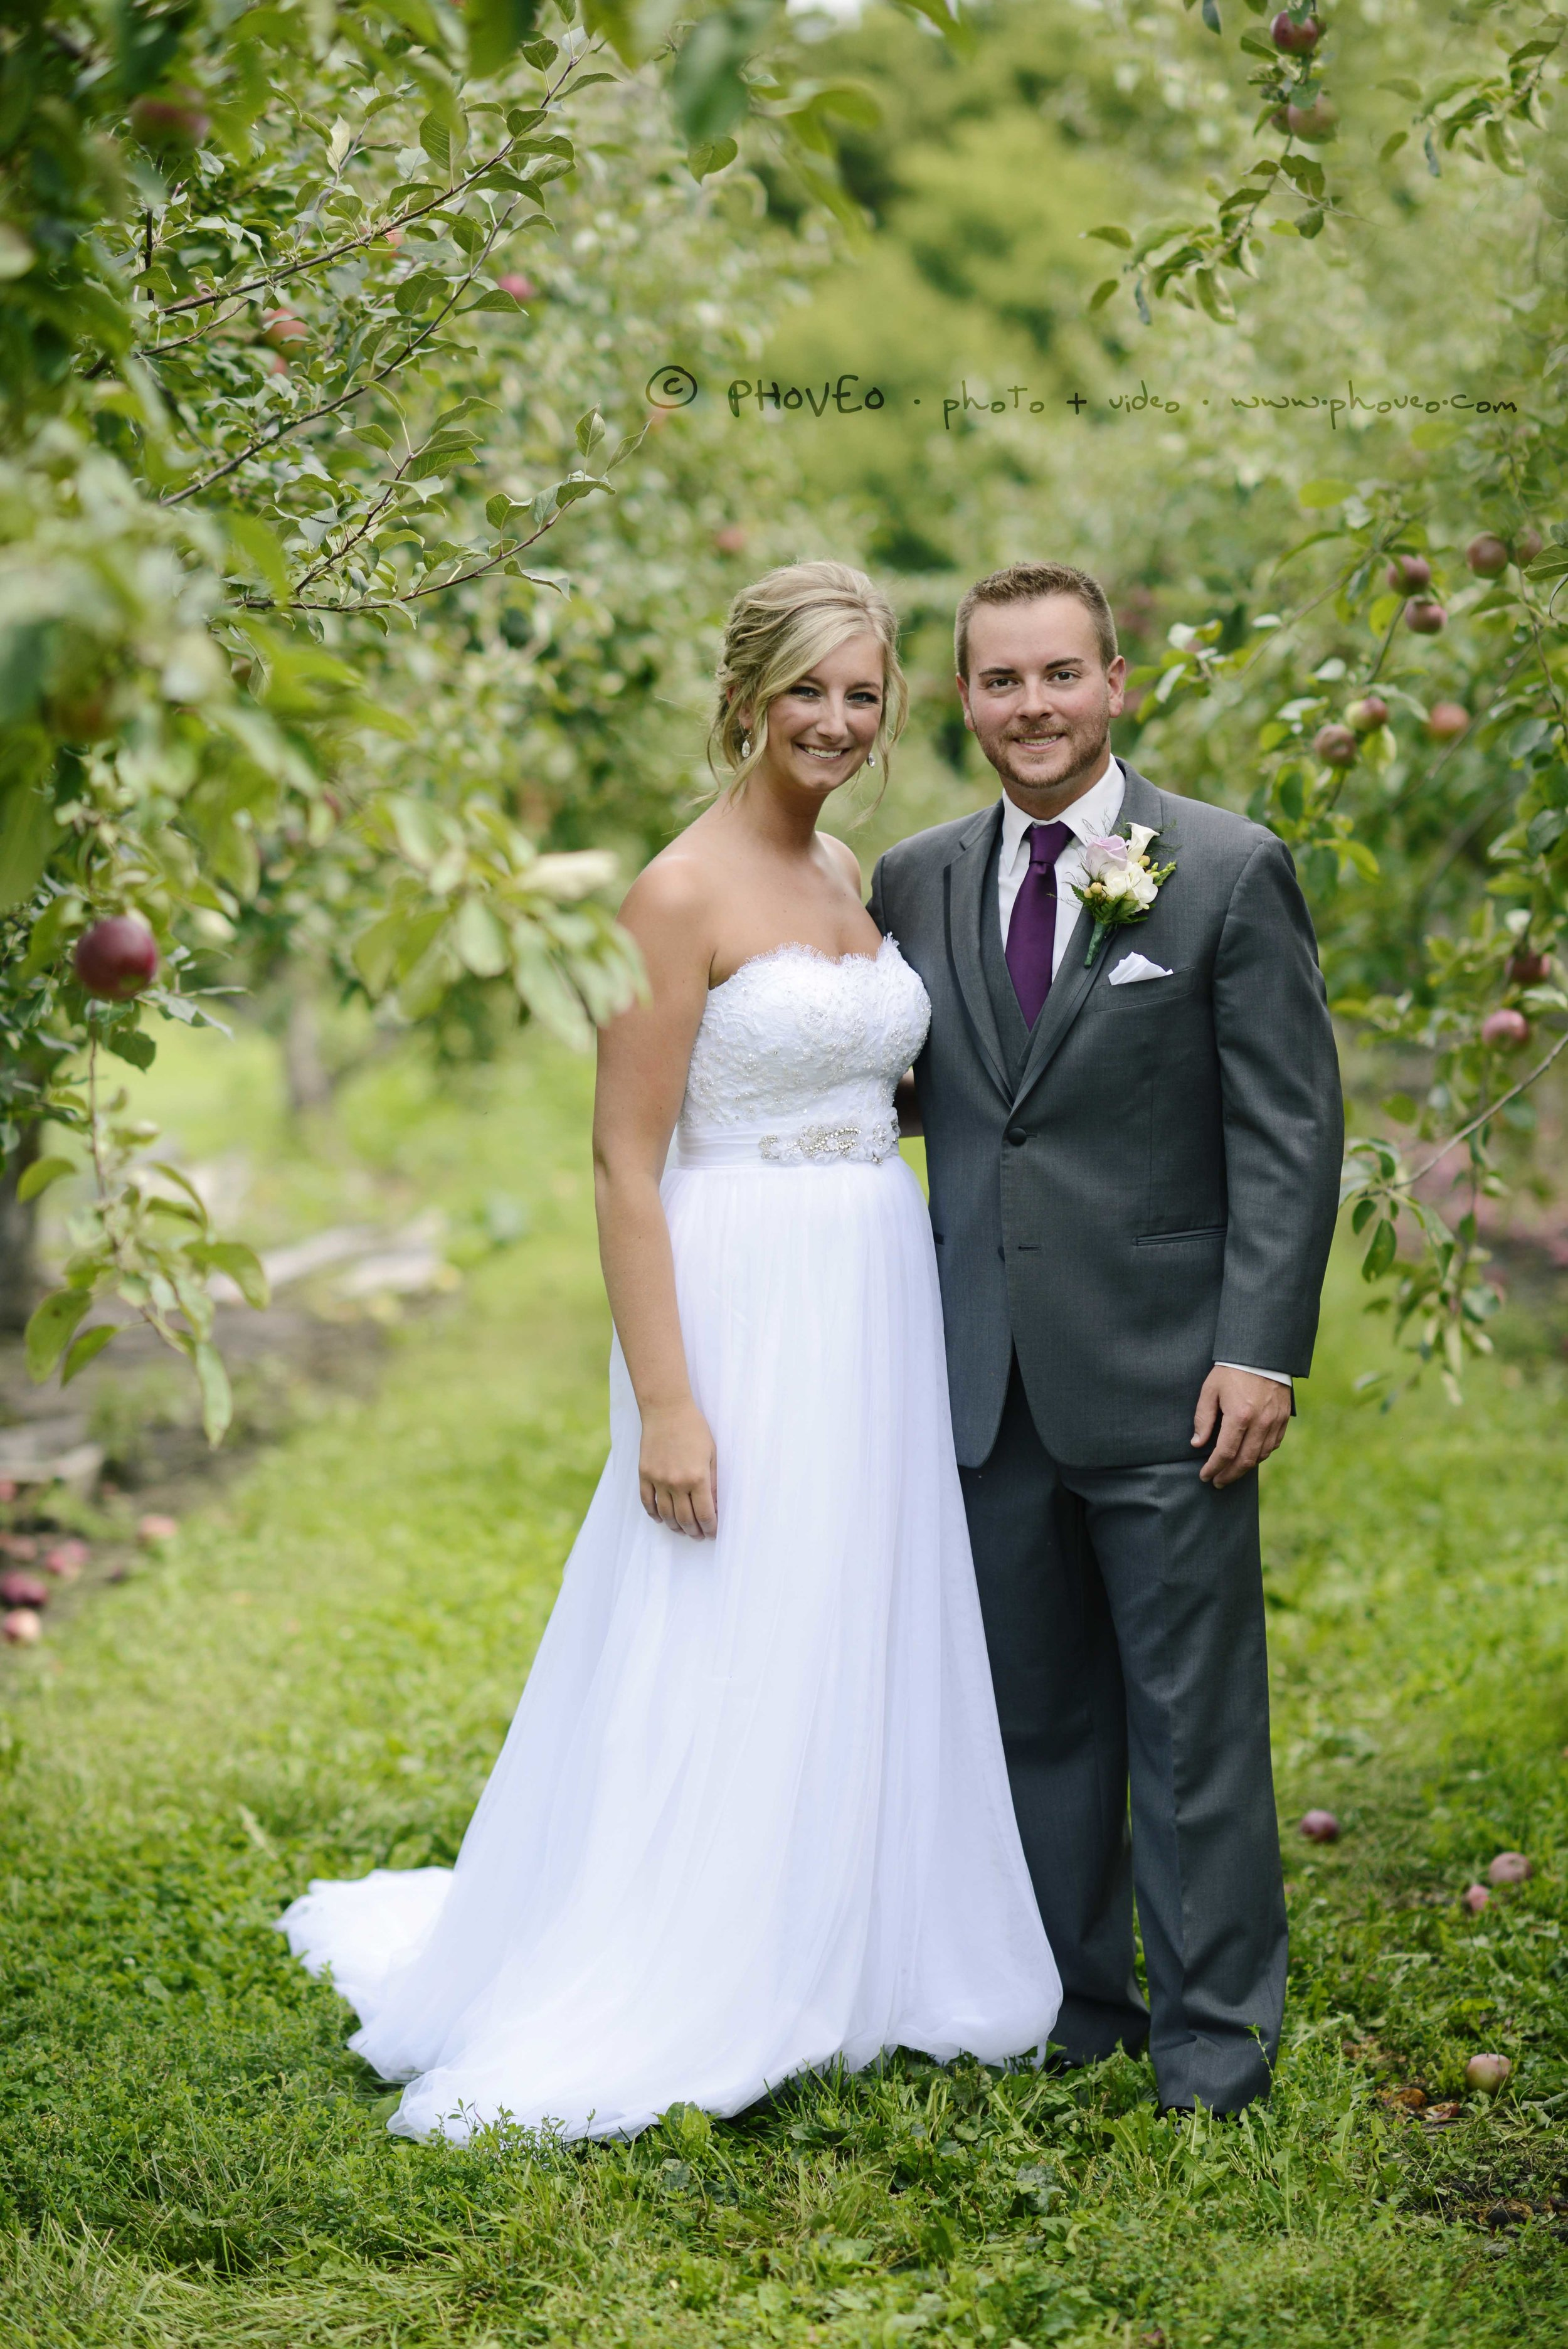 WM_20160826_Katelyn+Tony_129.jpg